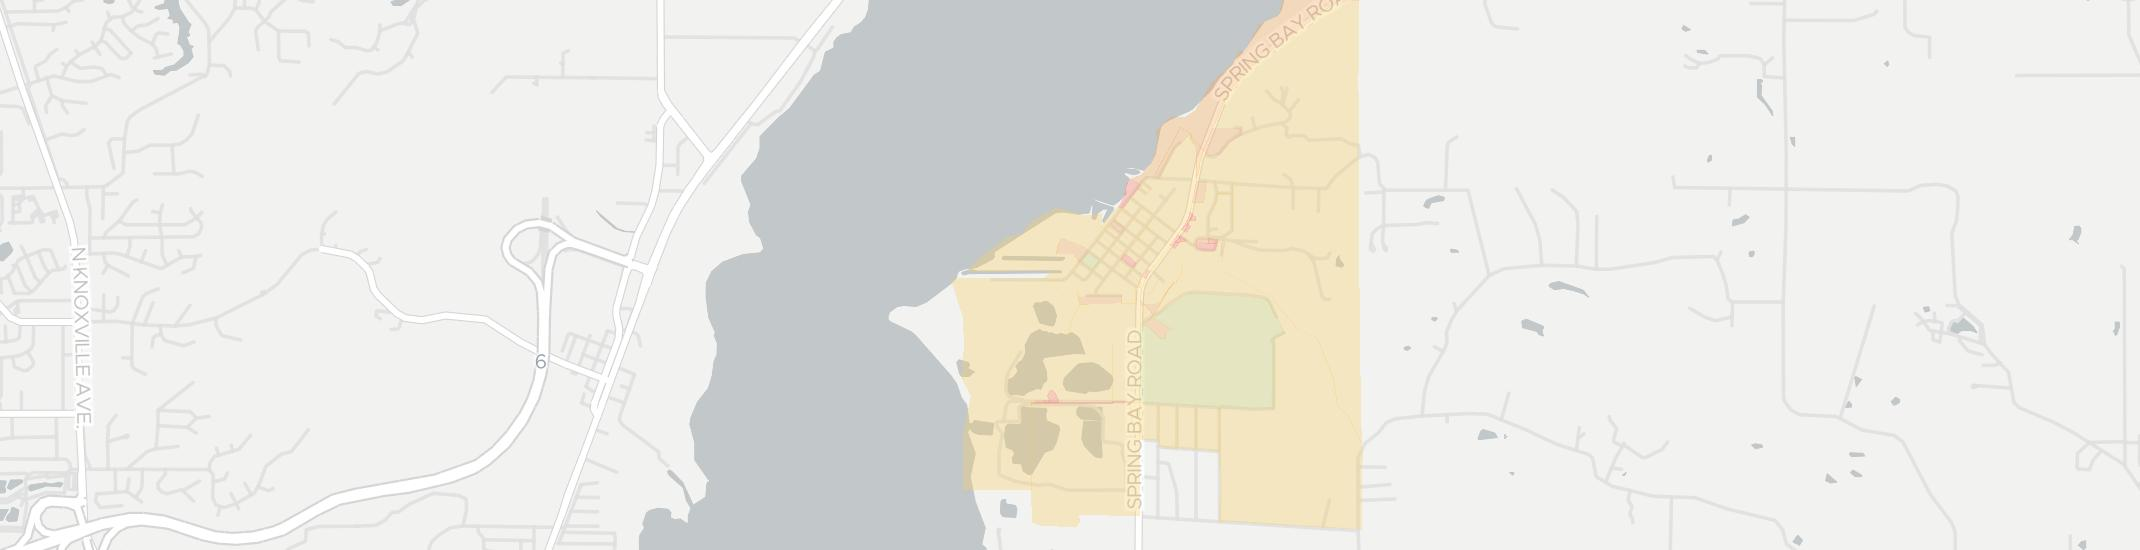 Spring Bay Internet Competition Map. Click for interactive map.